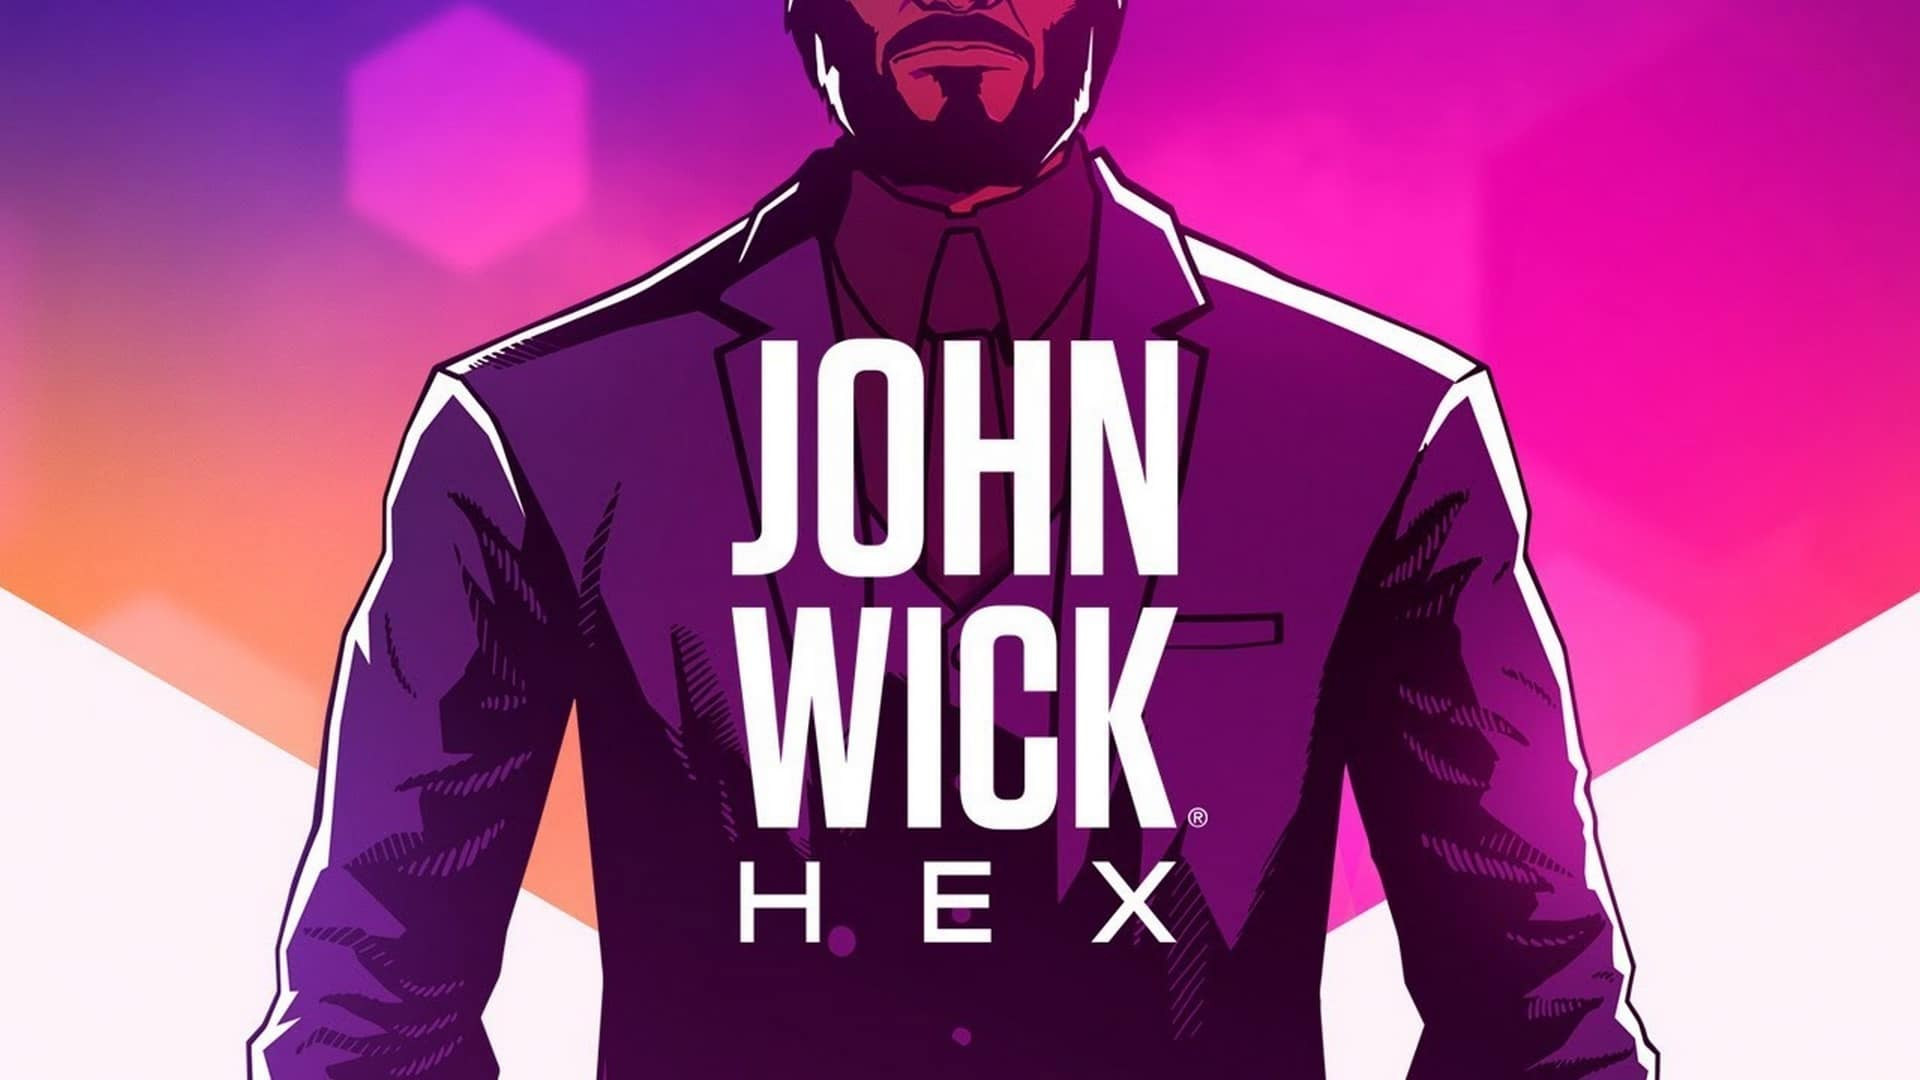 John Wick Hex Launches For PC On October 8th, Consoles To Follow